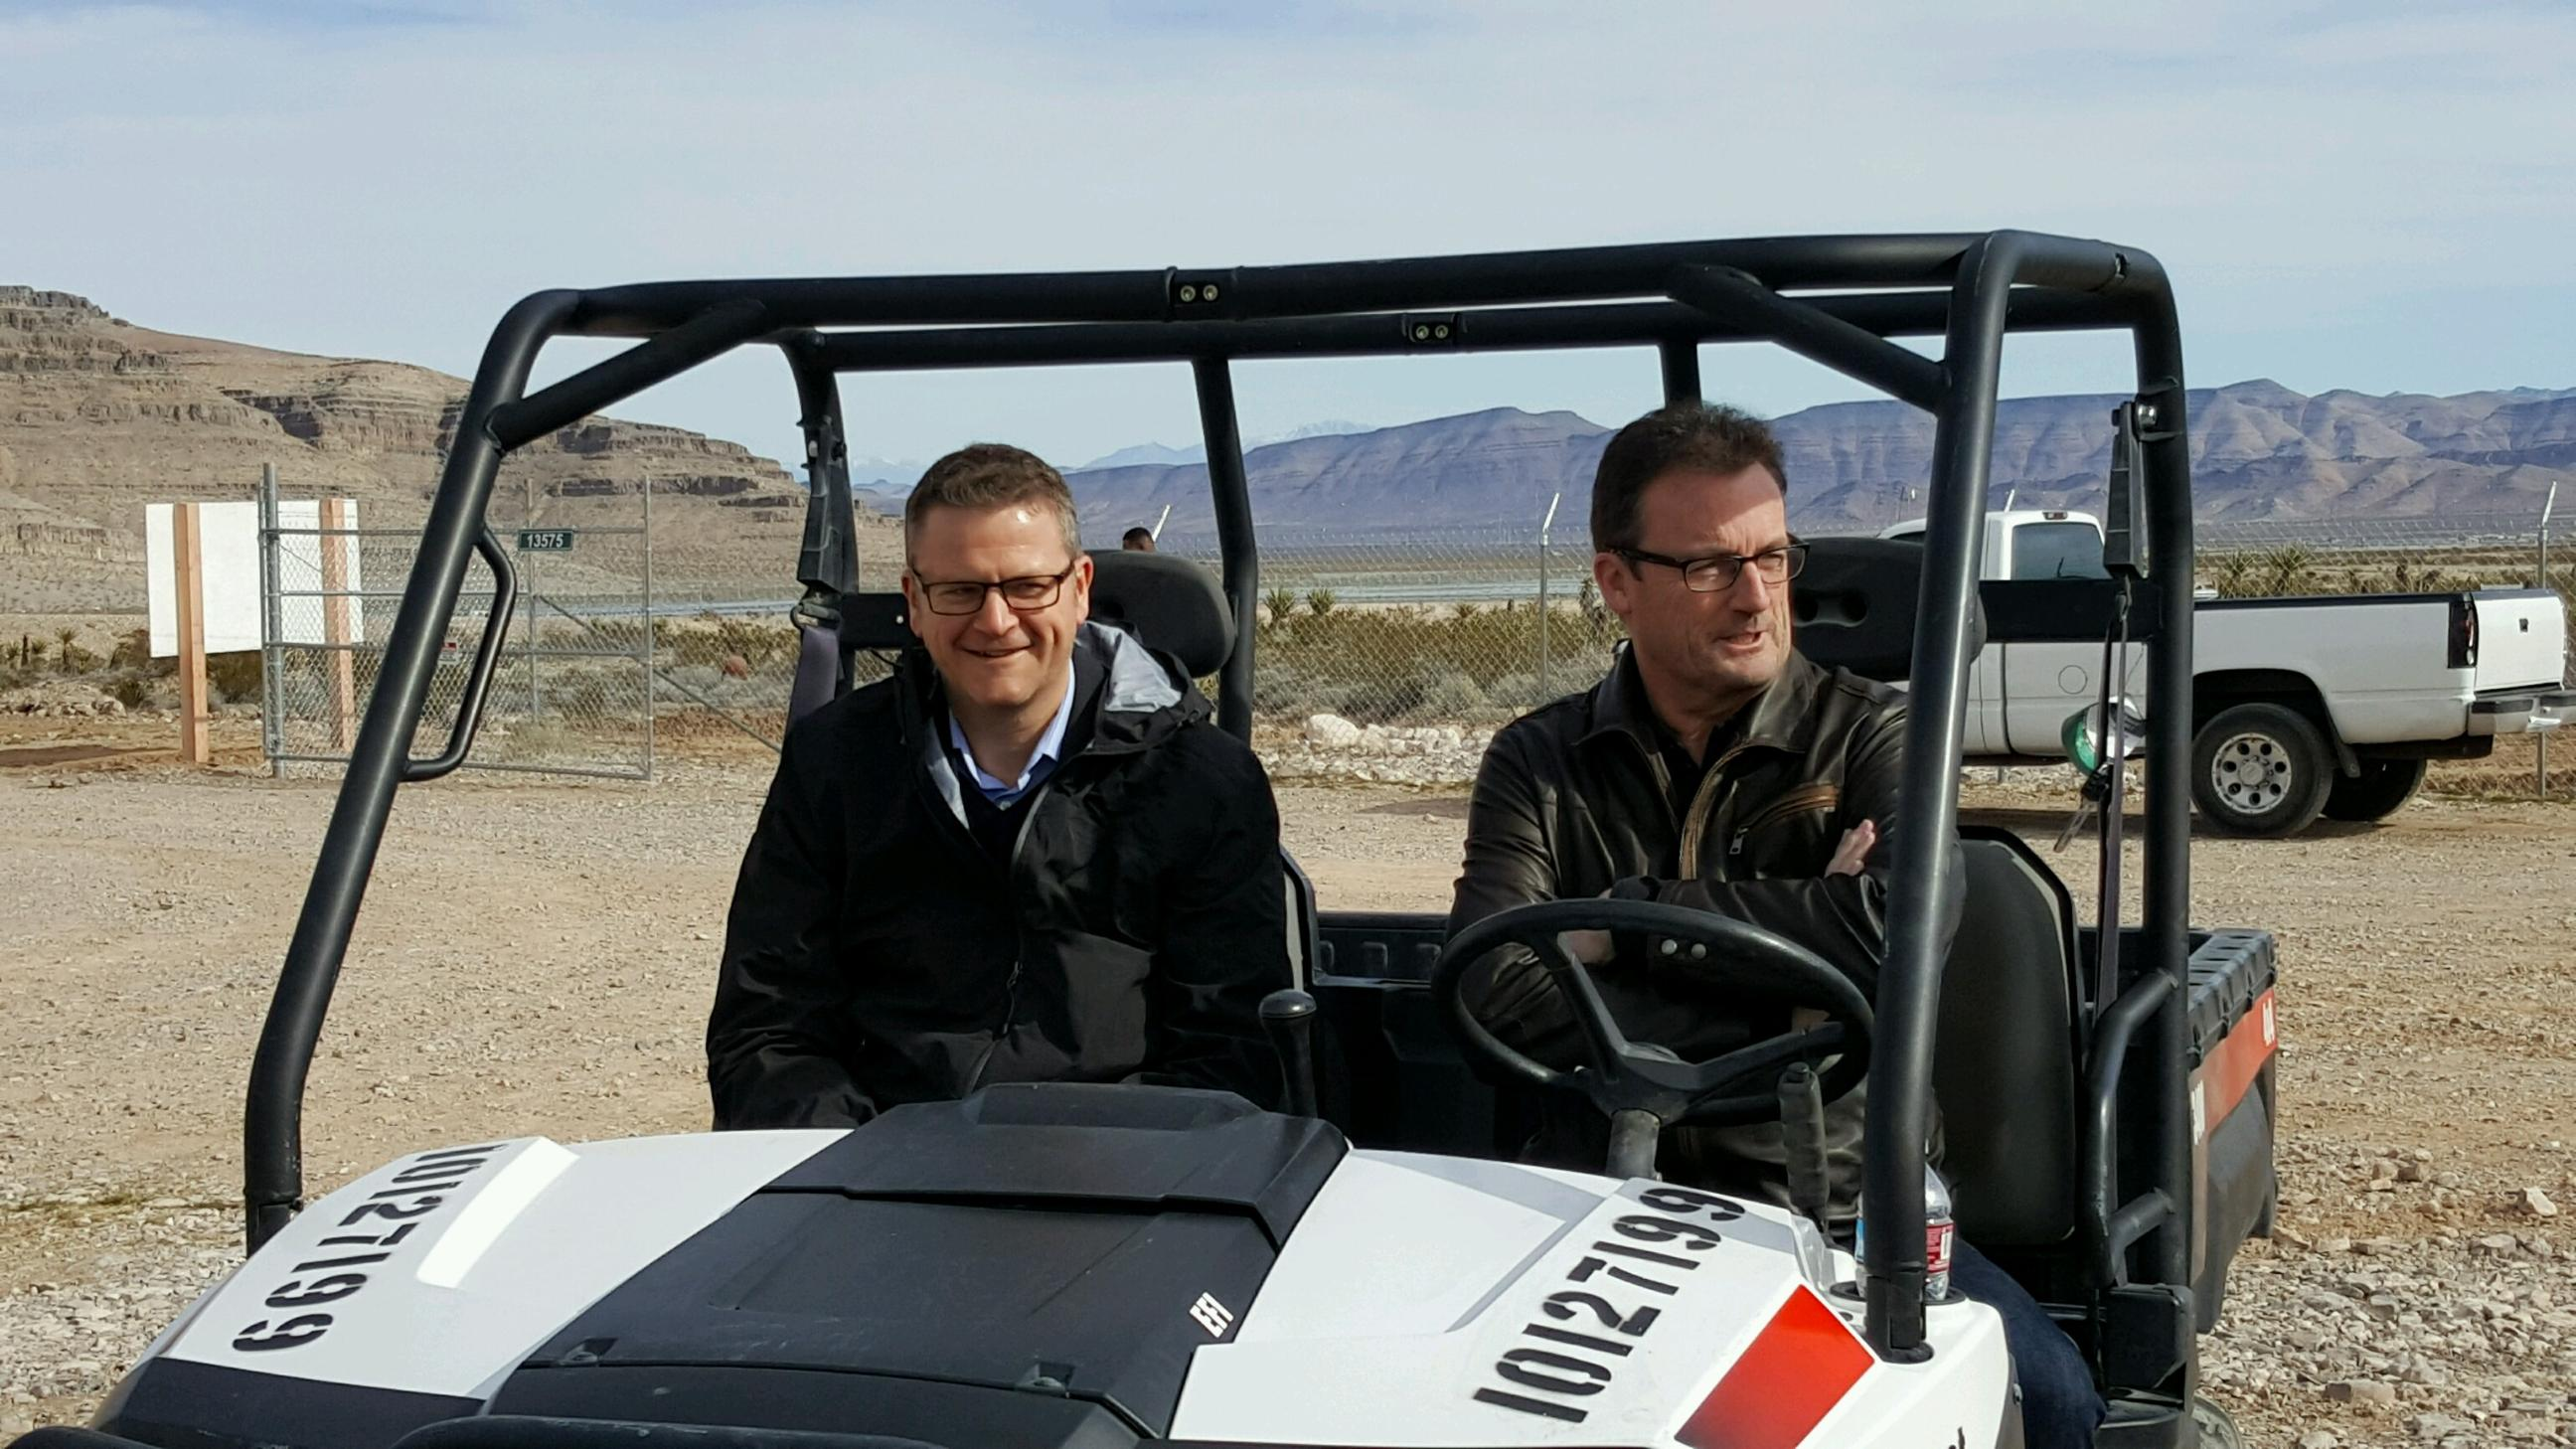 """That's what breaking ground looks like."" Hyperloop Tech CEO Rob Lloyd (right) said of the startup's test site in Nevada."